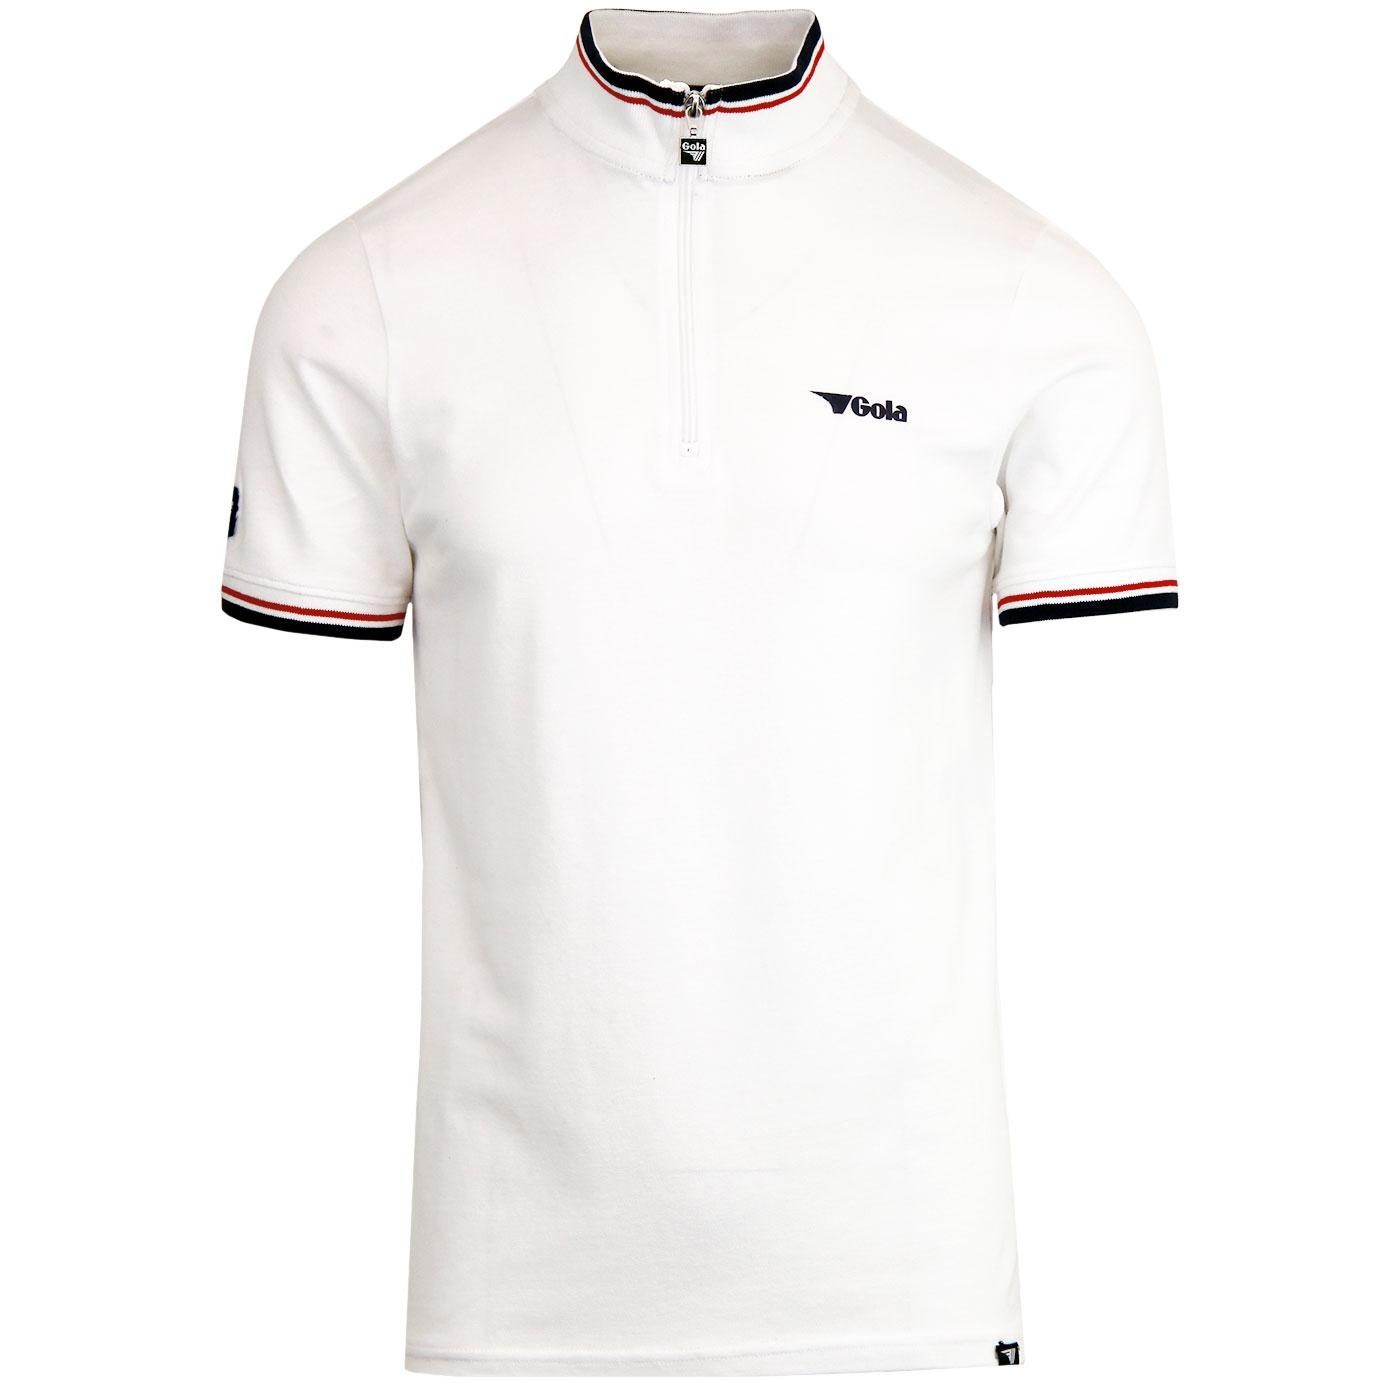 Aston GOLA CLASSICS Retro Zip Neck Cycling Top (W)